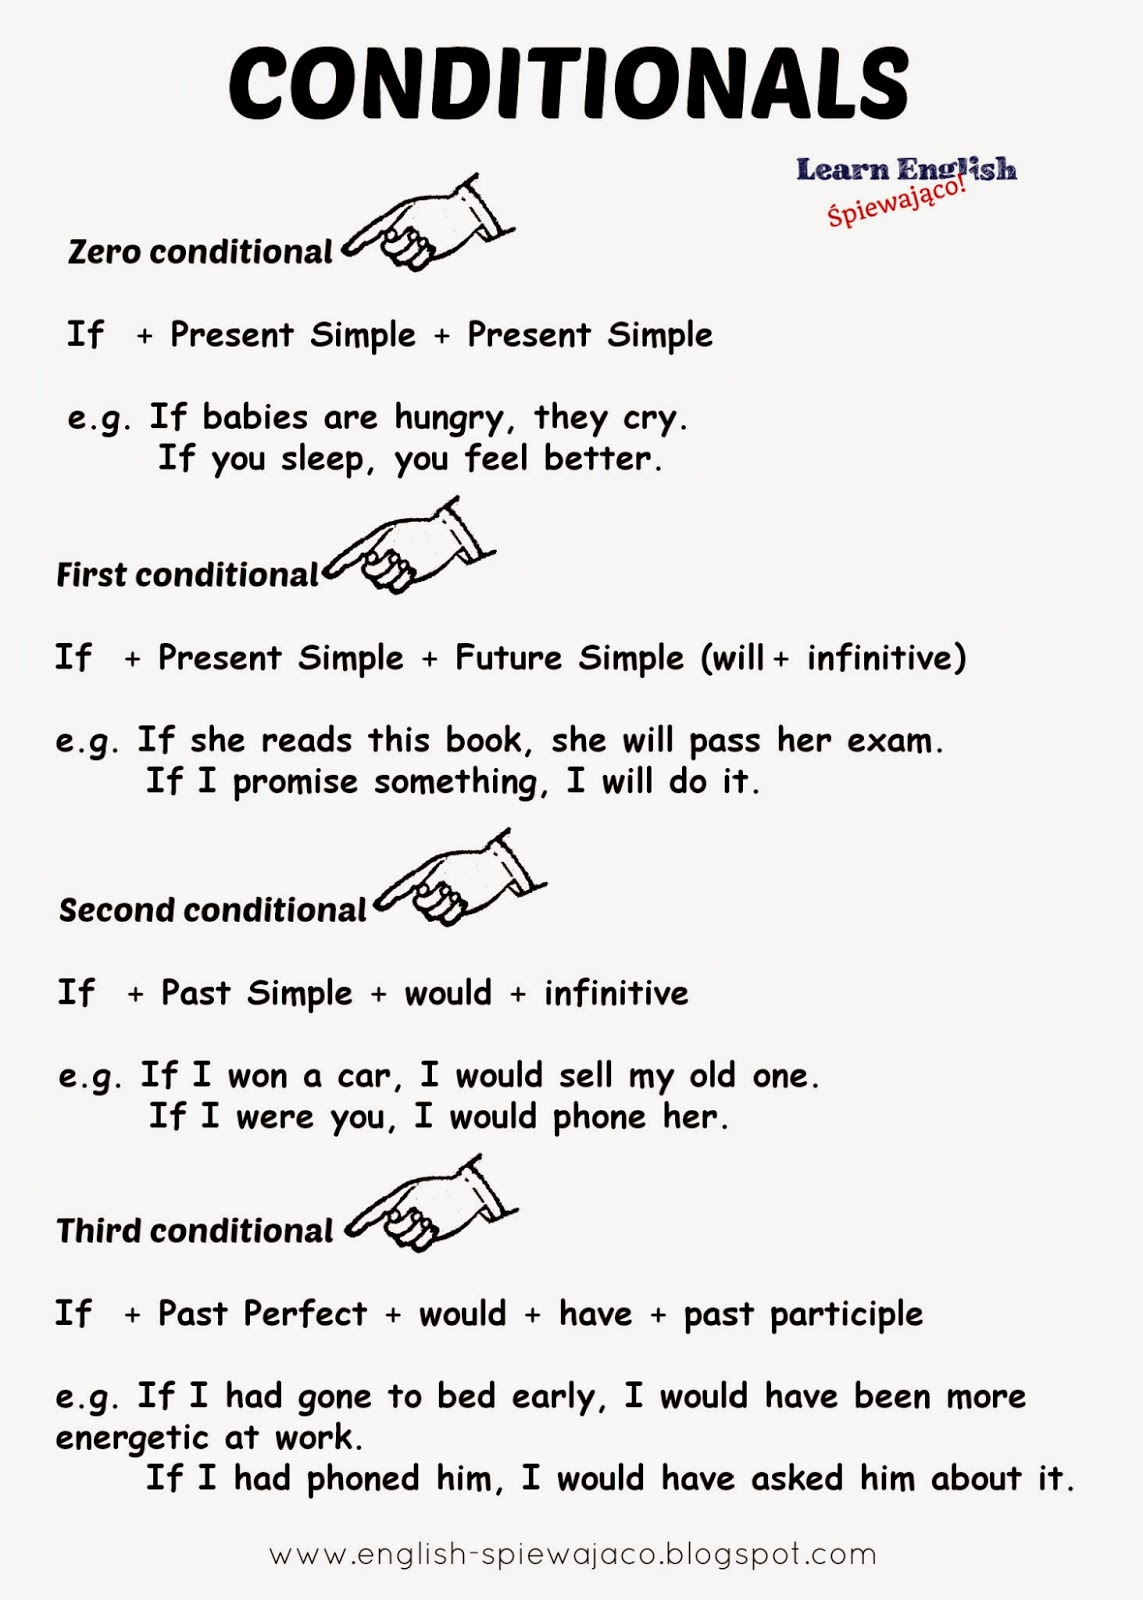 Conditionals Zero First Second Third